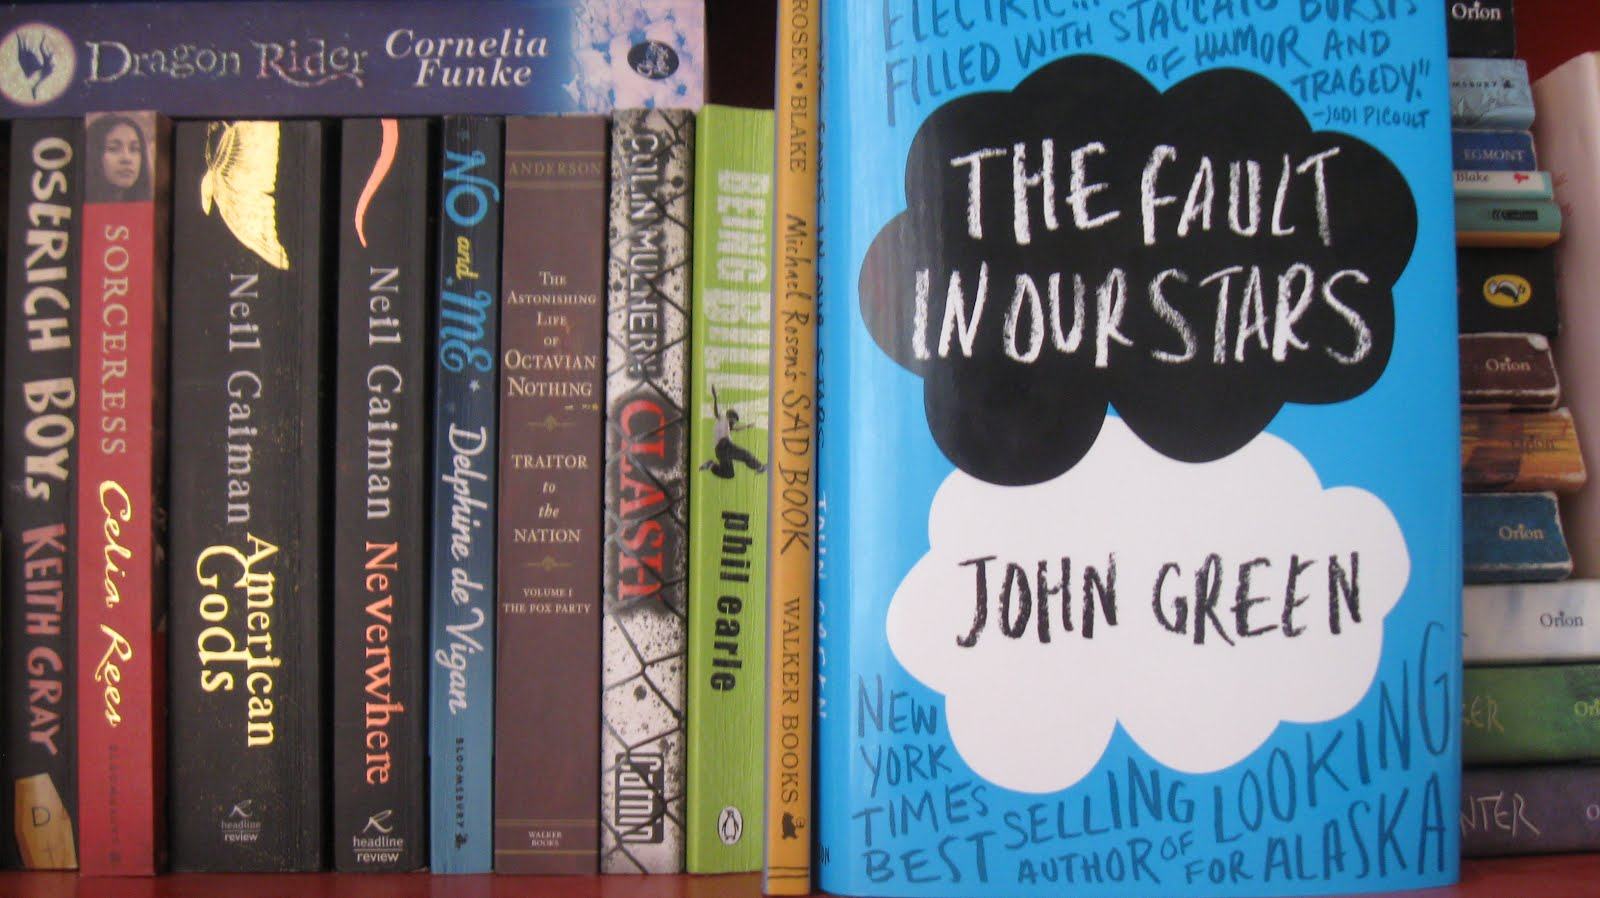 John Green, The Fault in Our Stars and Sick Lit